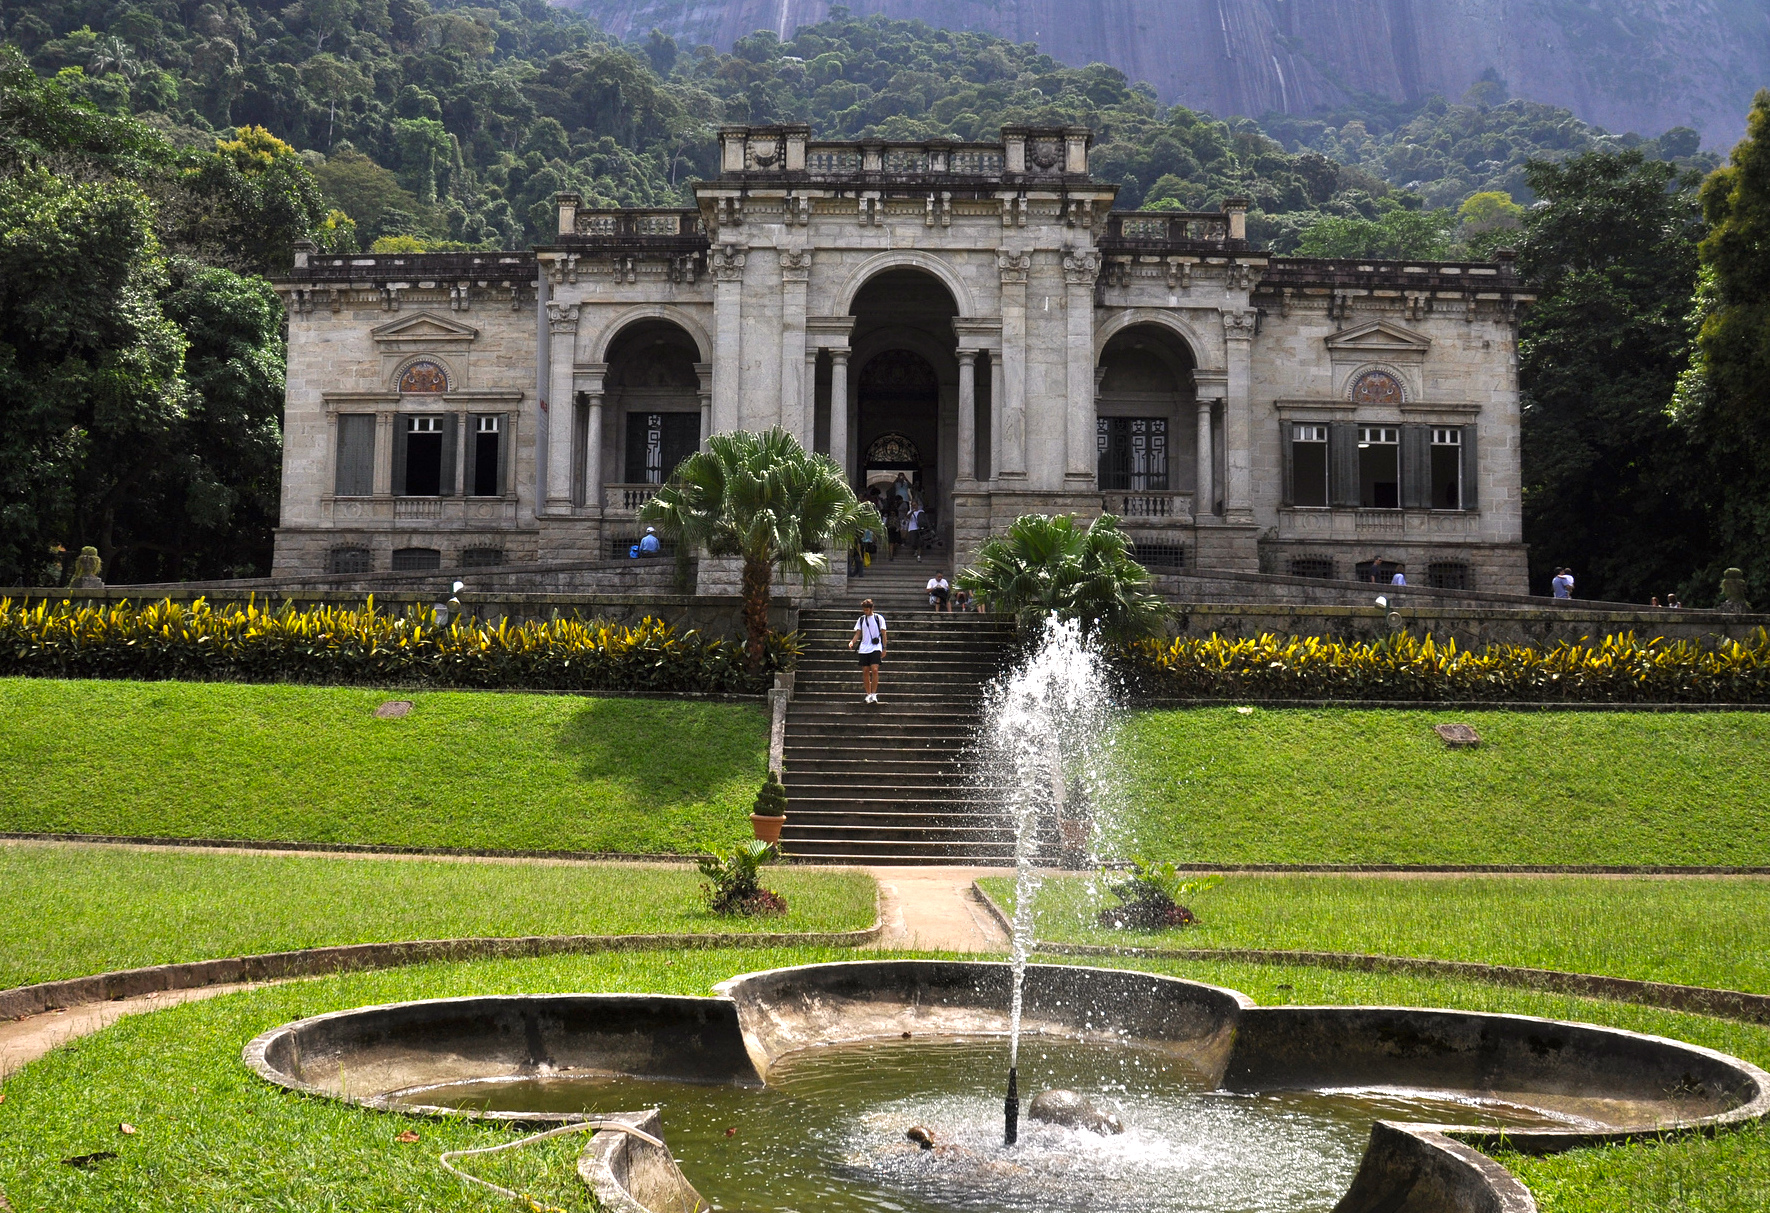 Consistently rated as one of the most beautiful parks in Rio de Janeiro, Parque Lage is an oasis of calm situated just underneath Cristo Redentor (Christ the Redeemer), Rio de Janeiro, Brazil, Brazil News